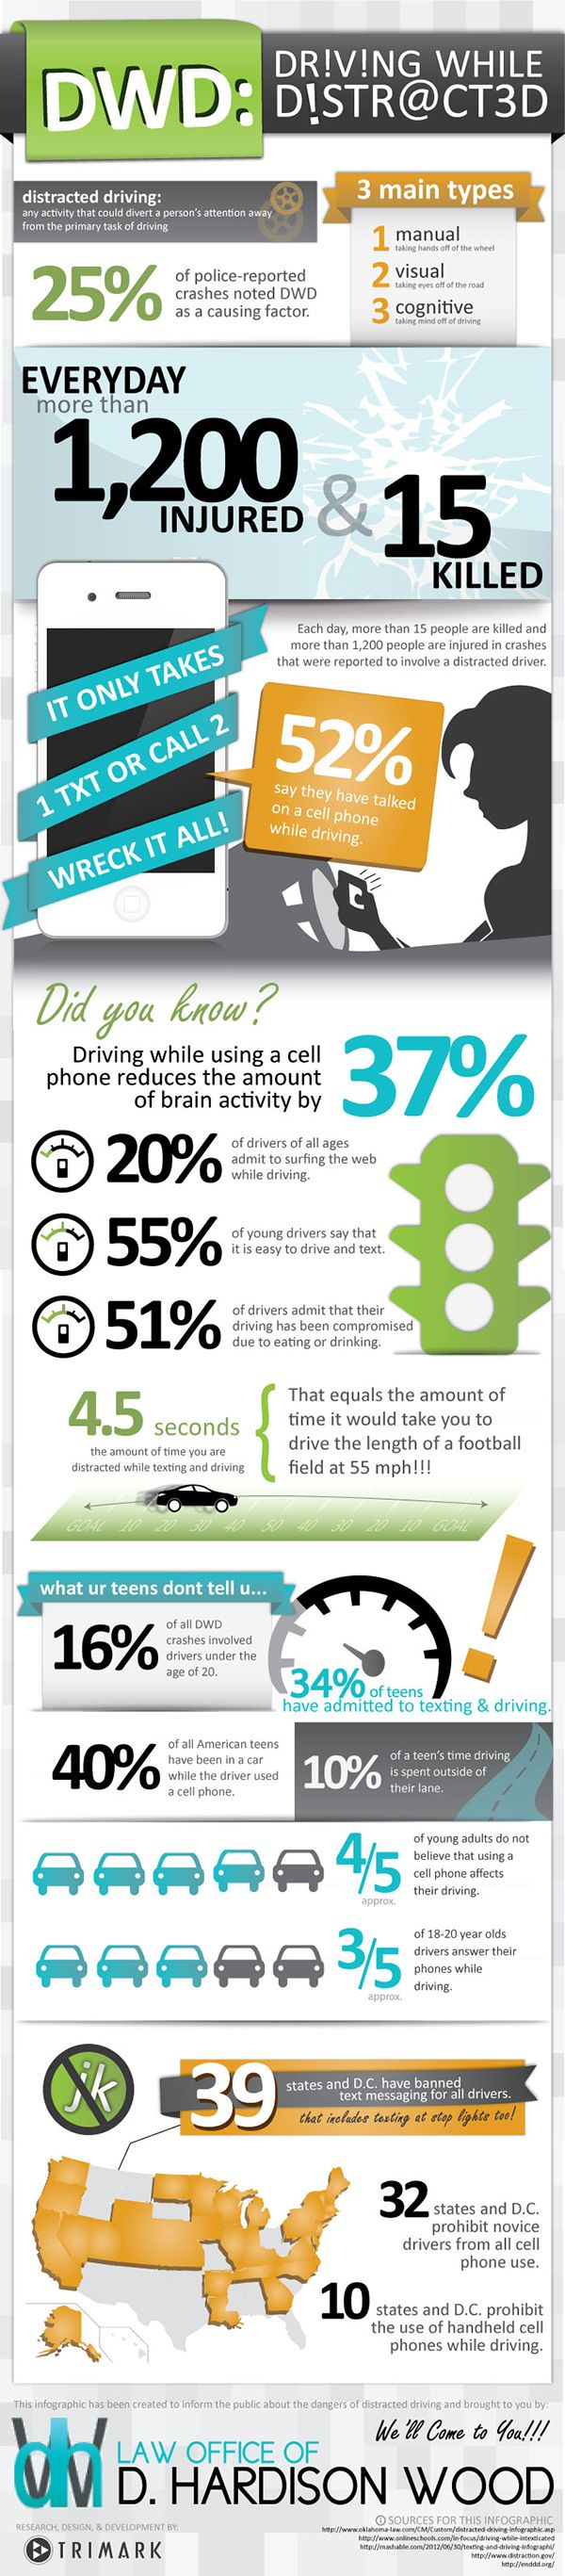 Law Office of Hardison Wood, Distracted Driving Infographic